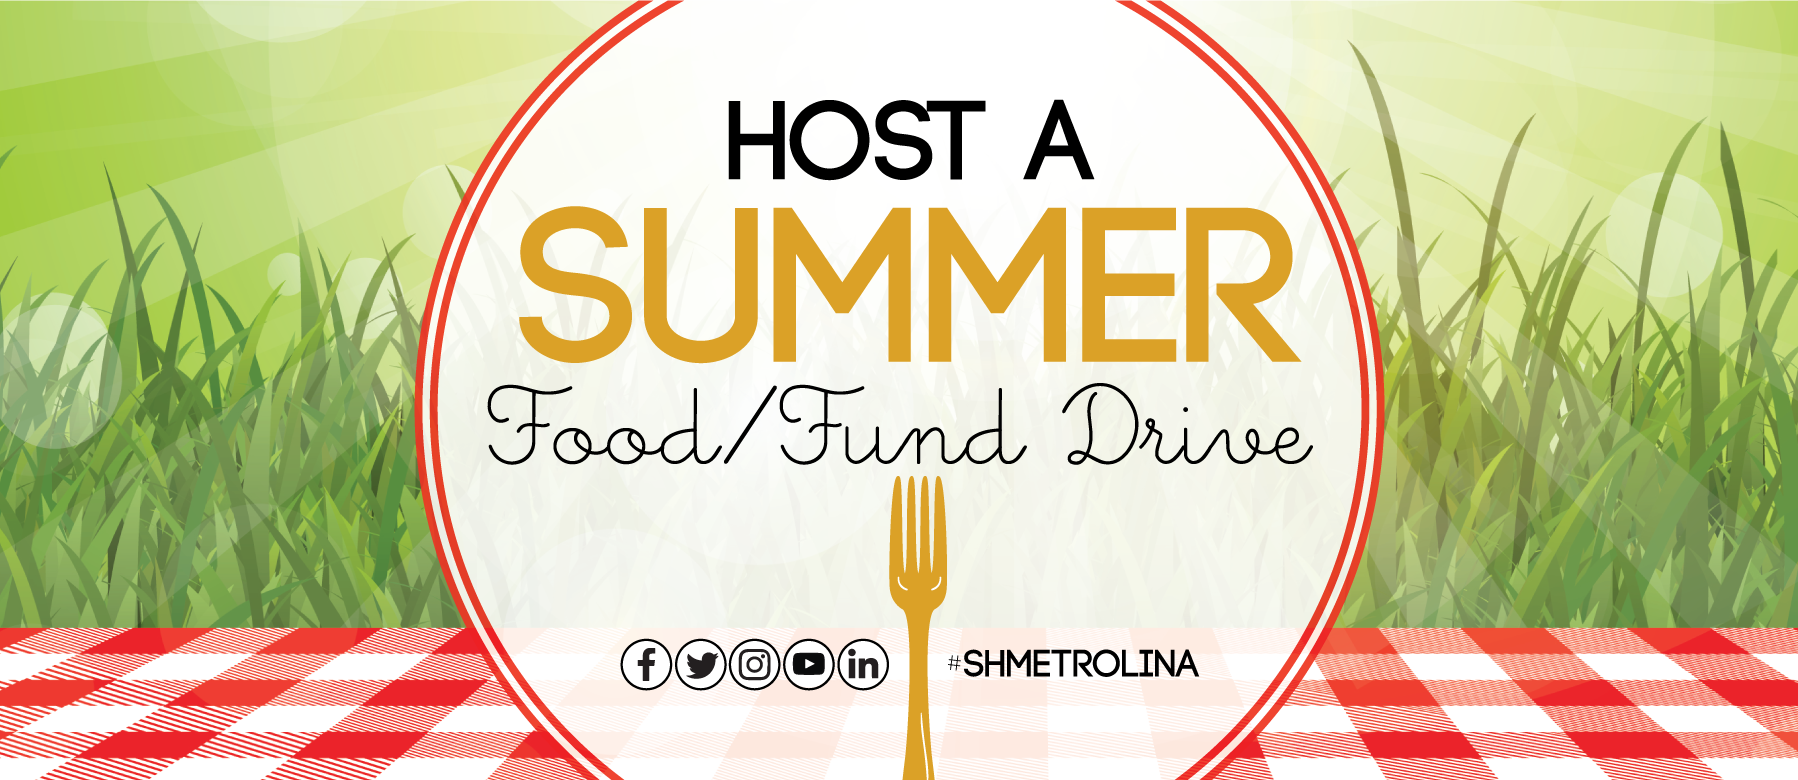 Host A Summer Food/Fund Drive